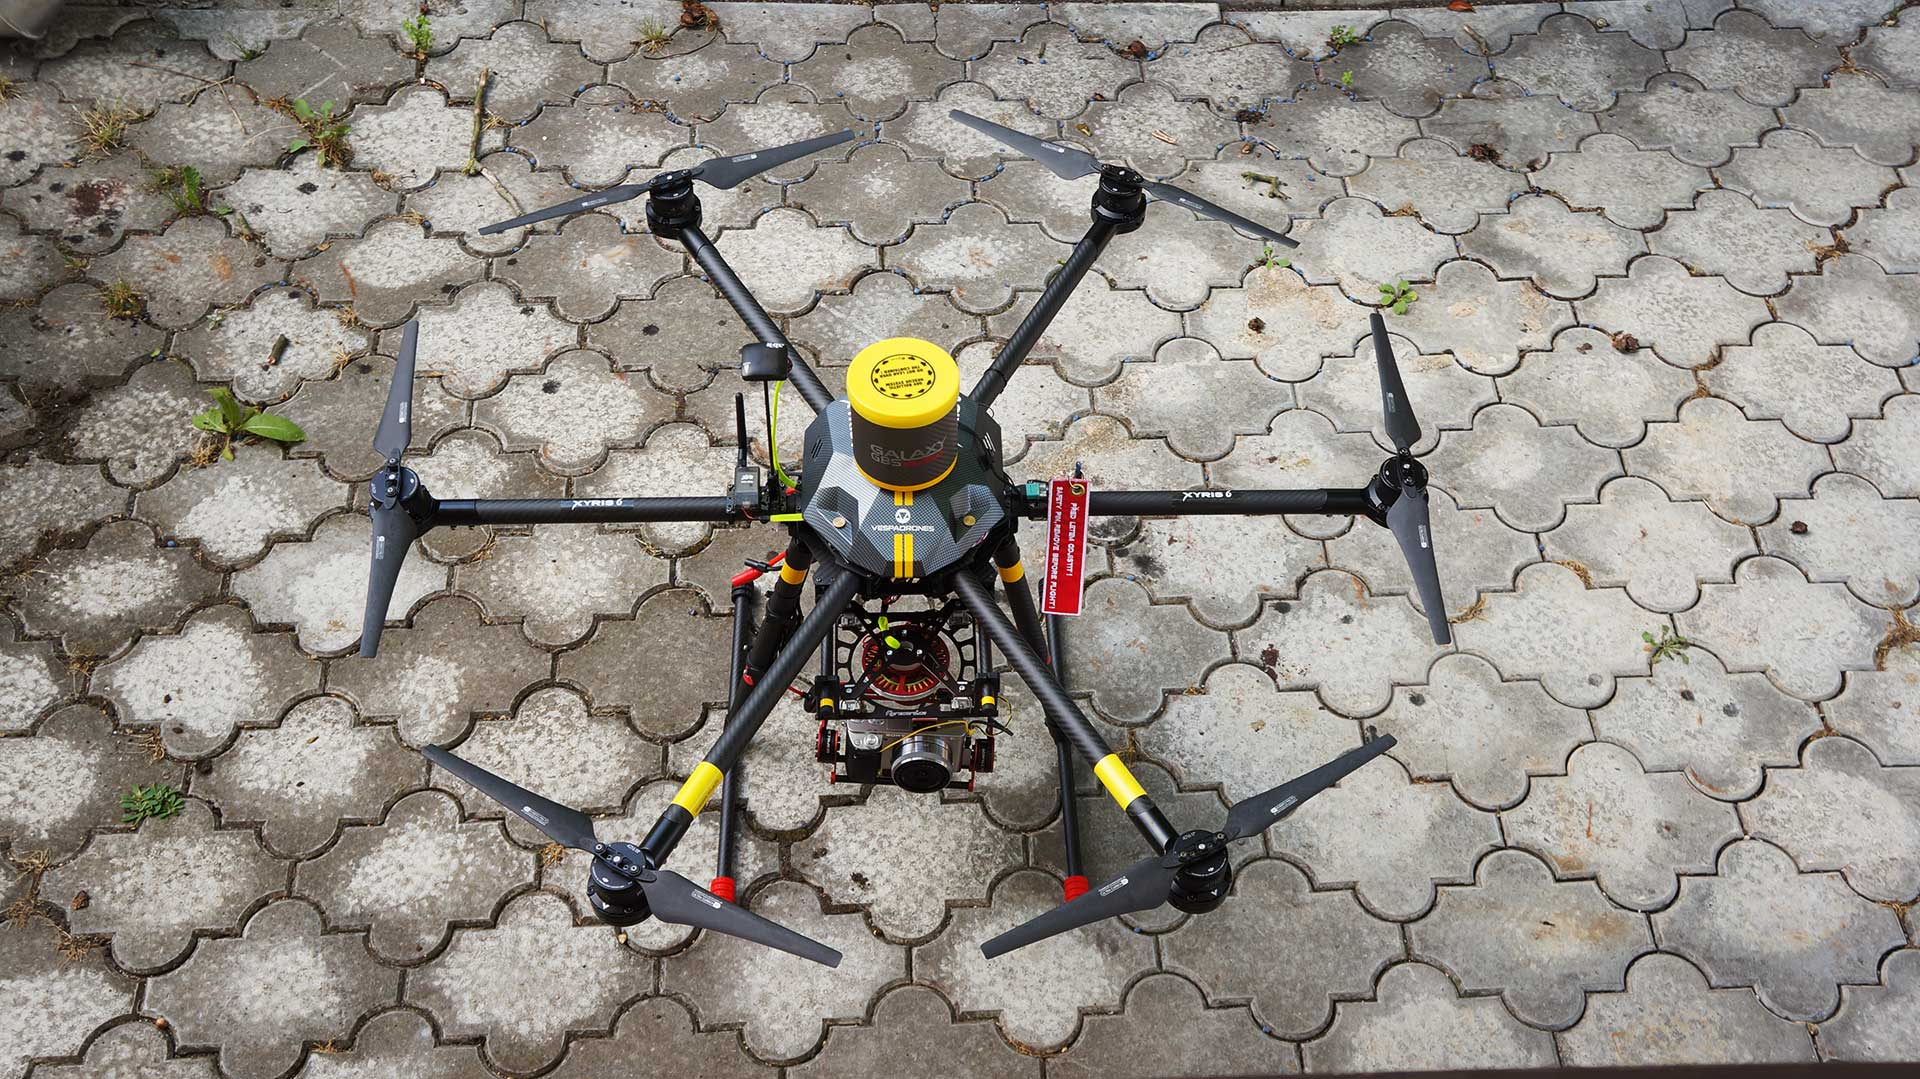 thermographic drone with camera with Xyris 6 on In Ehingen further Workswell Wiris 336 X 256 Resolution also JanSova besides Drones In Utilities And Renewables Sectors additionally Thermal Drones.